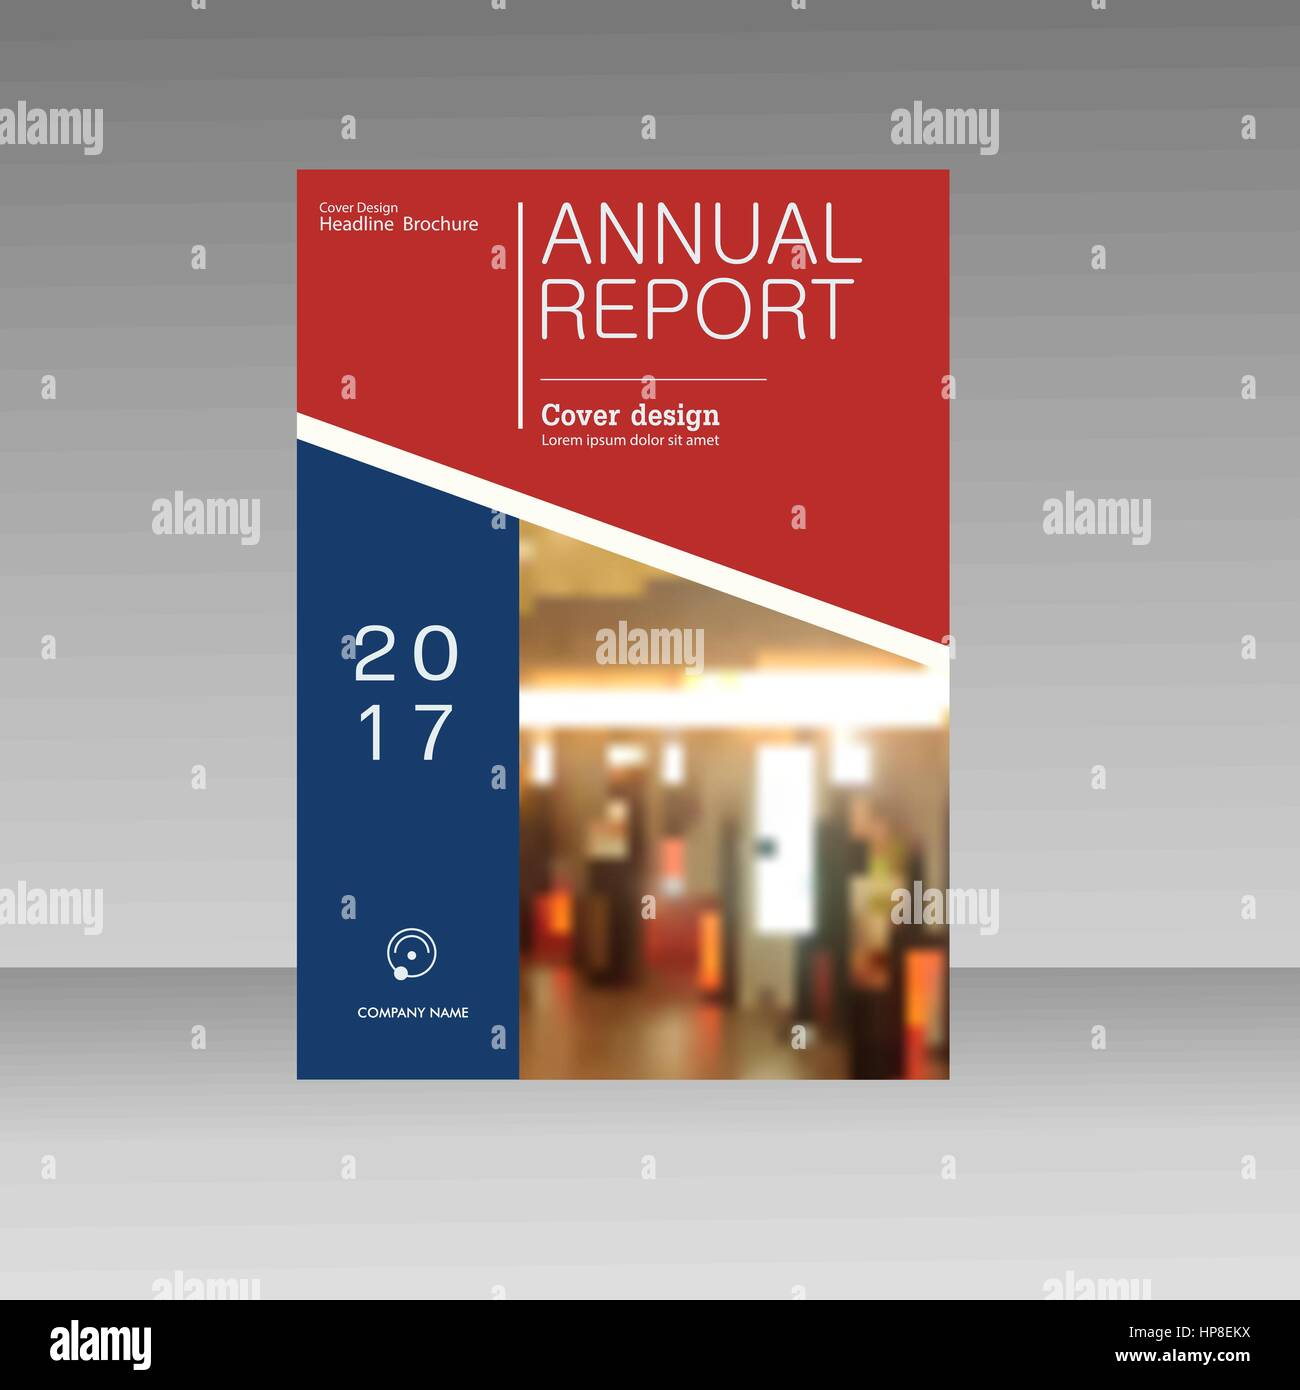 Annual Report Brochure Flyer Template A Vector Design Book Cover - Brochure flyer templates